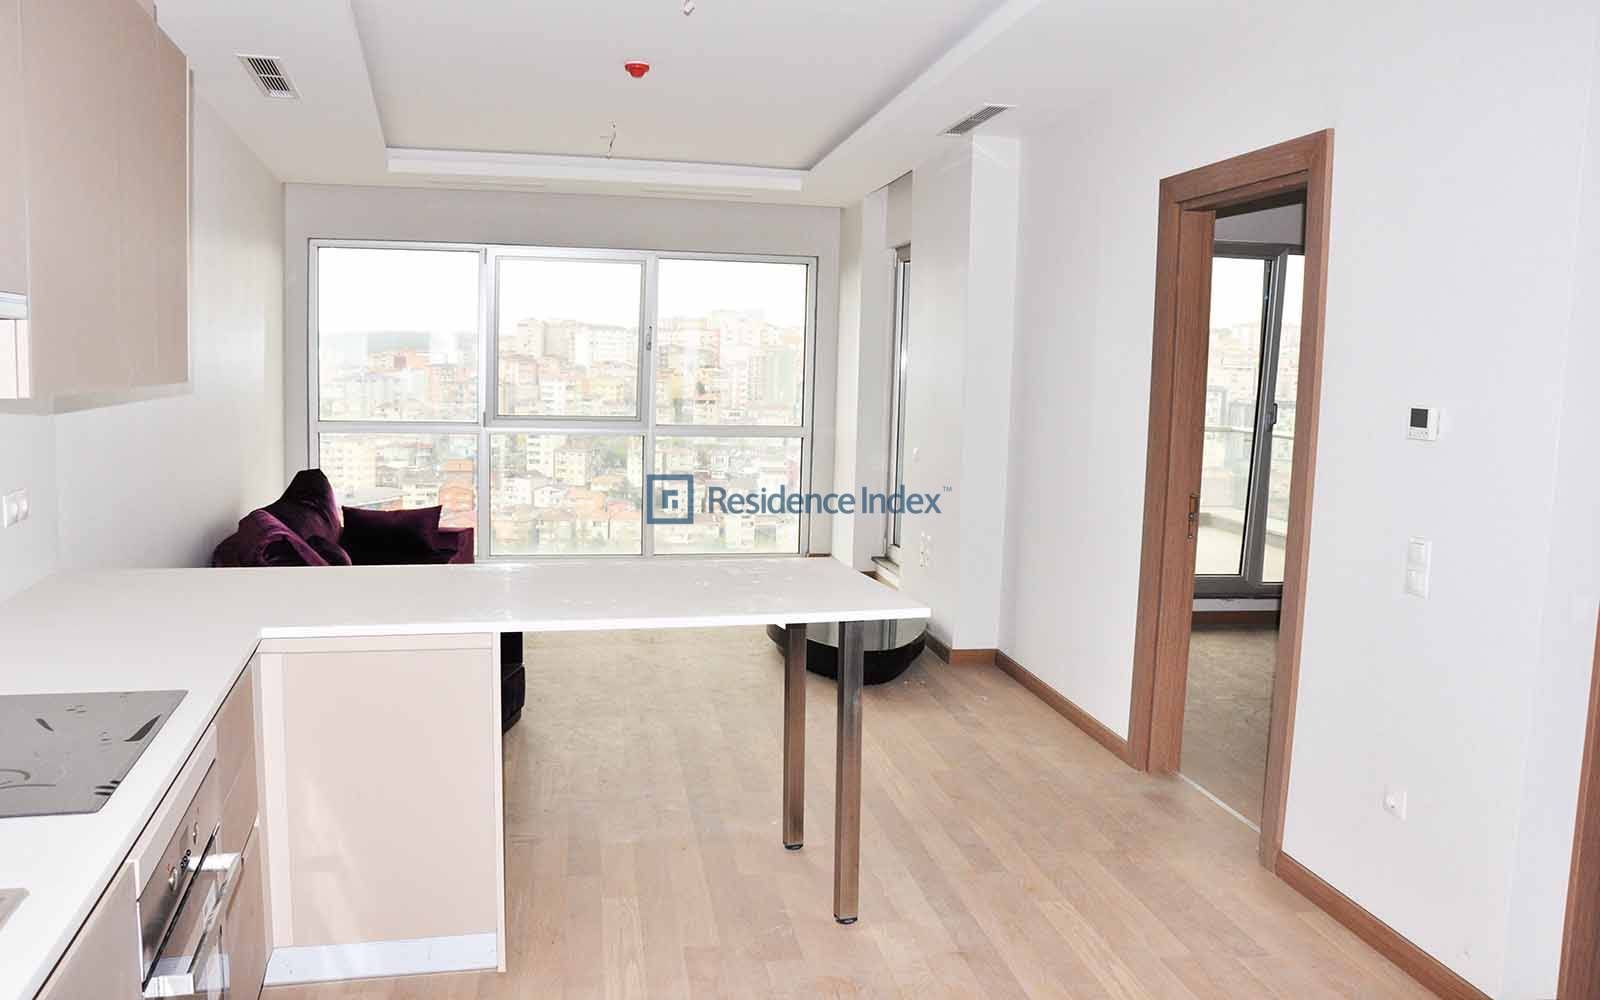 Maslak 1453 in T Blocks 1 + 1 Apartment For Sale